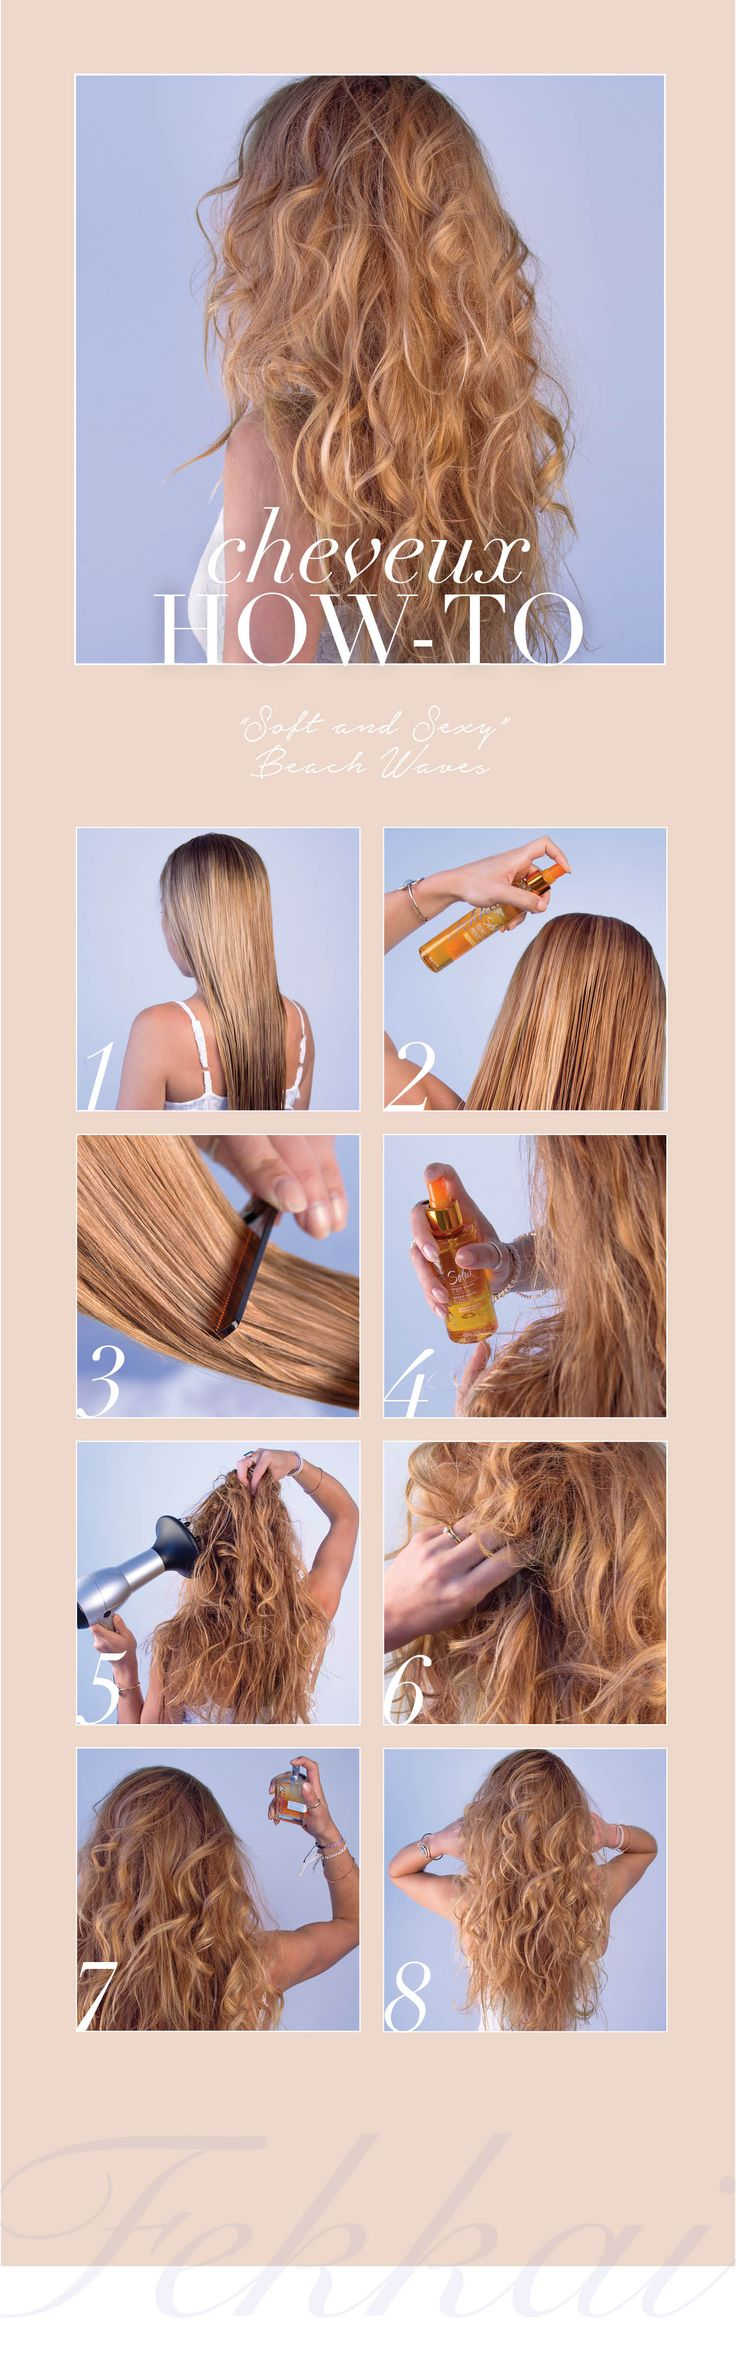 The Perfect Summer Beach Waves Hair How-to: 1. Start with clean, damp hair 2. Spray Pre-Soleil Hair Mist throughout hair for SPF protection 3. Comb through 4. Spray Fekkai Beach Waves Tousling Spray onto hair, while scrunching hair from the bottom up.  5. Use a diffuser or let hair air dry 6. Tousle and shape waves as needed 7. Finish off look with Fekkai L'air de St. Barths Hair Fragrance. 8. Voila! The perfect Femme Fekkai beachy waves